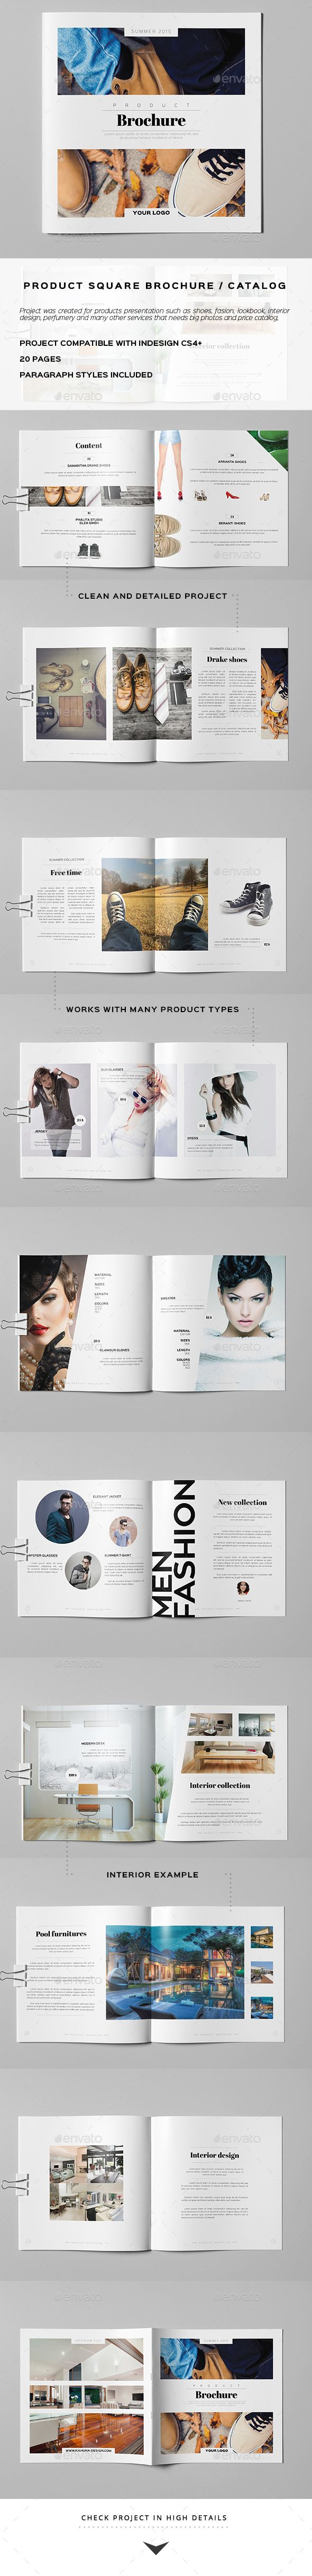 Product Square Brochure / Catalog